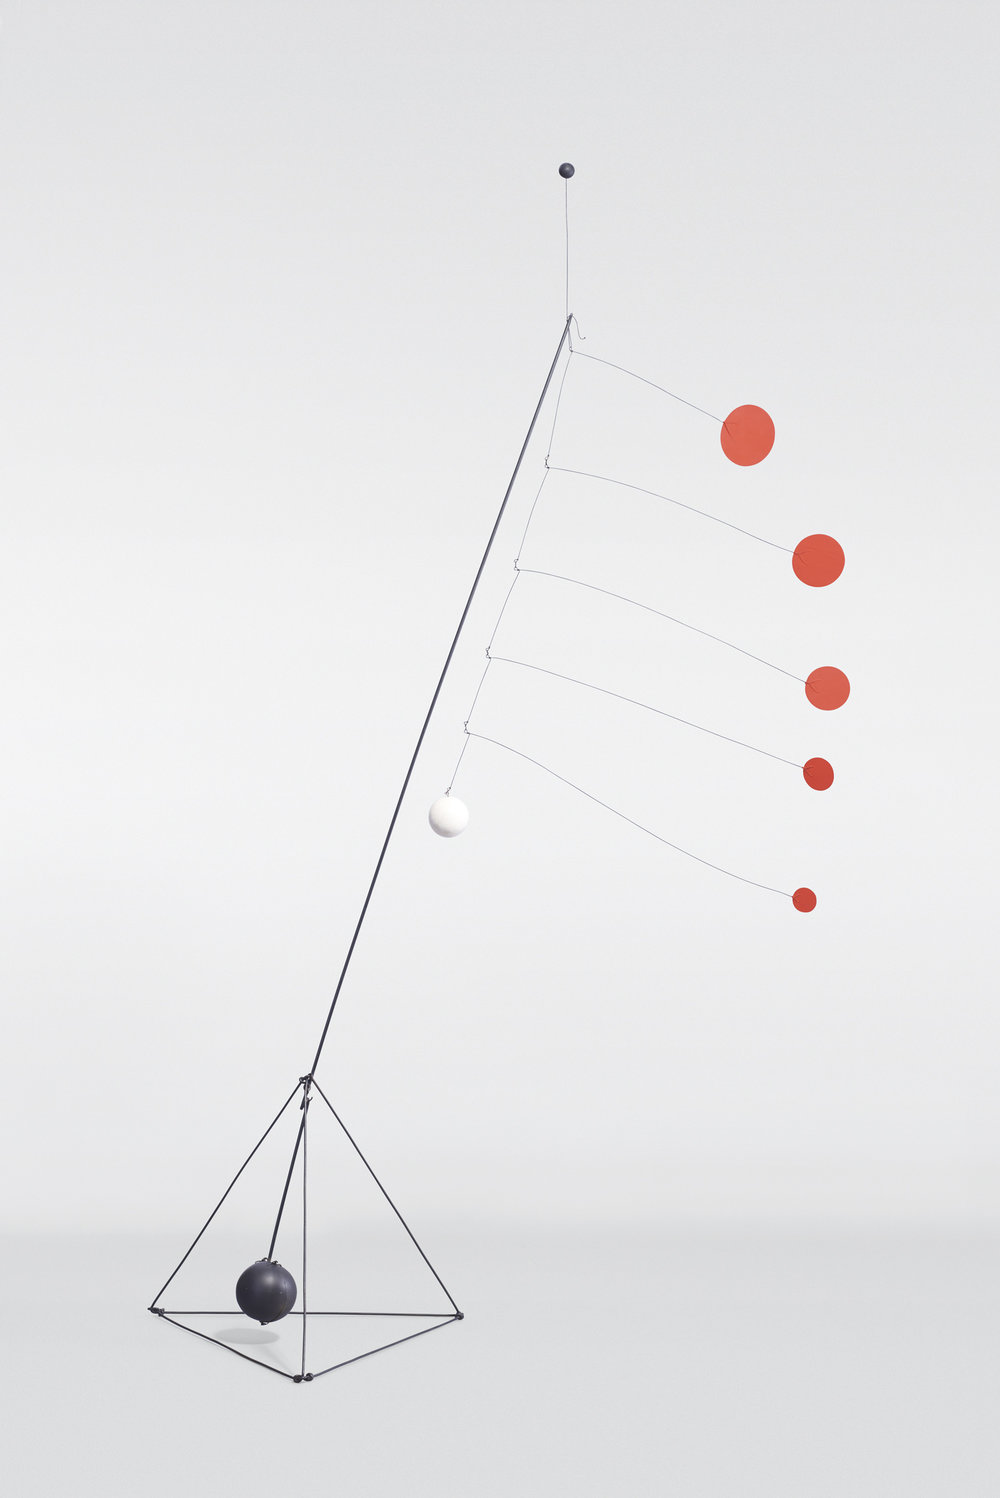 Calder_Object_Red_Discs_Sequence_021_BEAUTY_SHOT_final.jpg